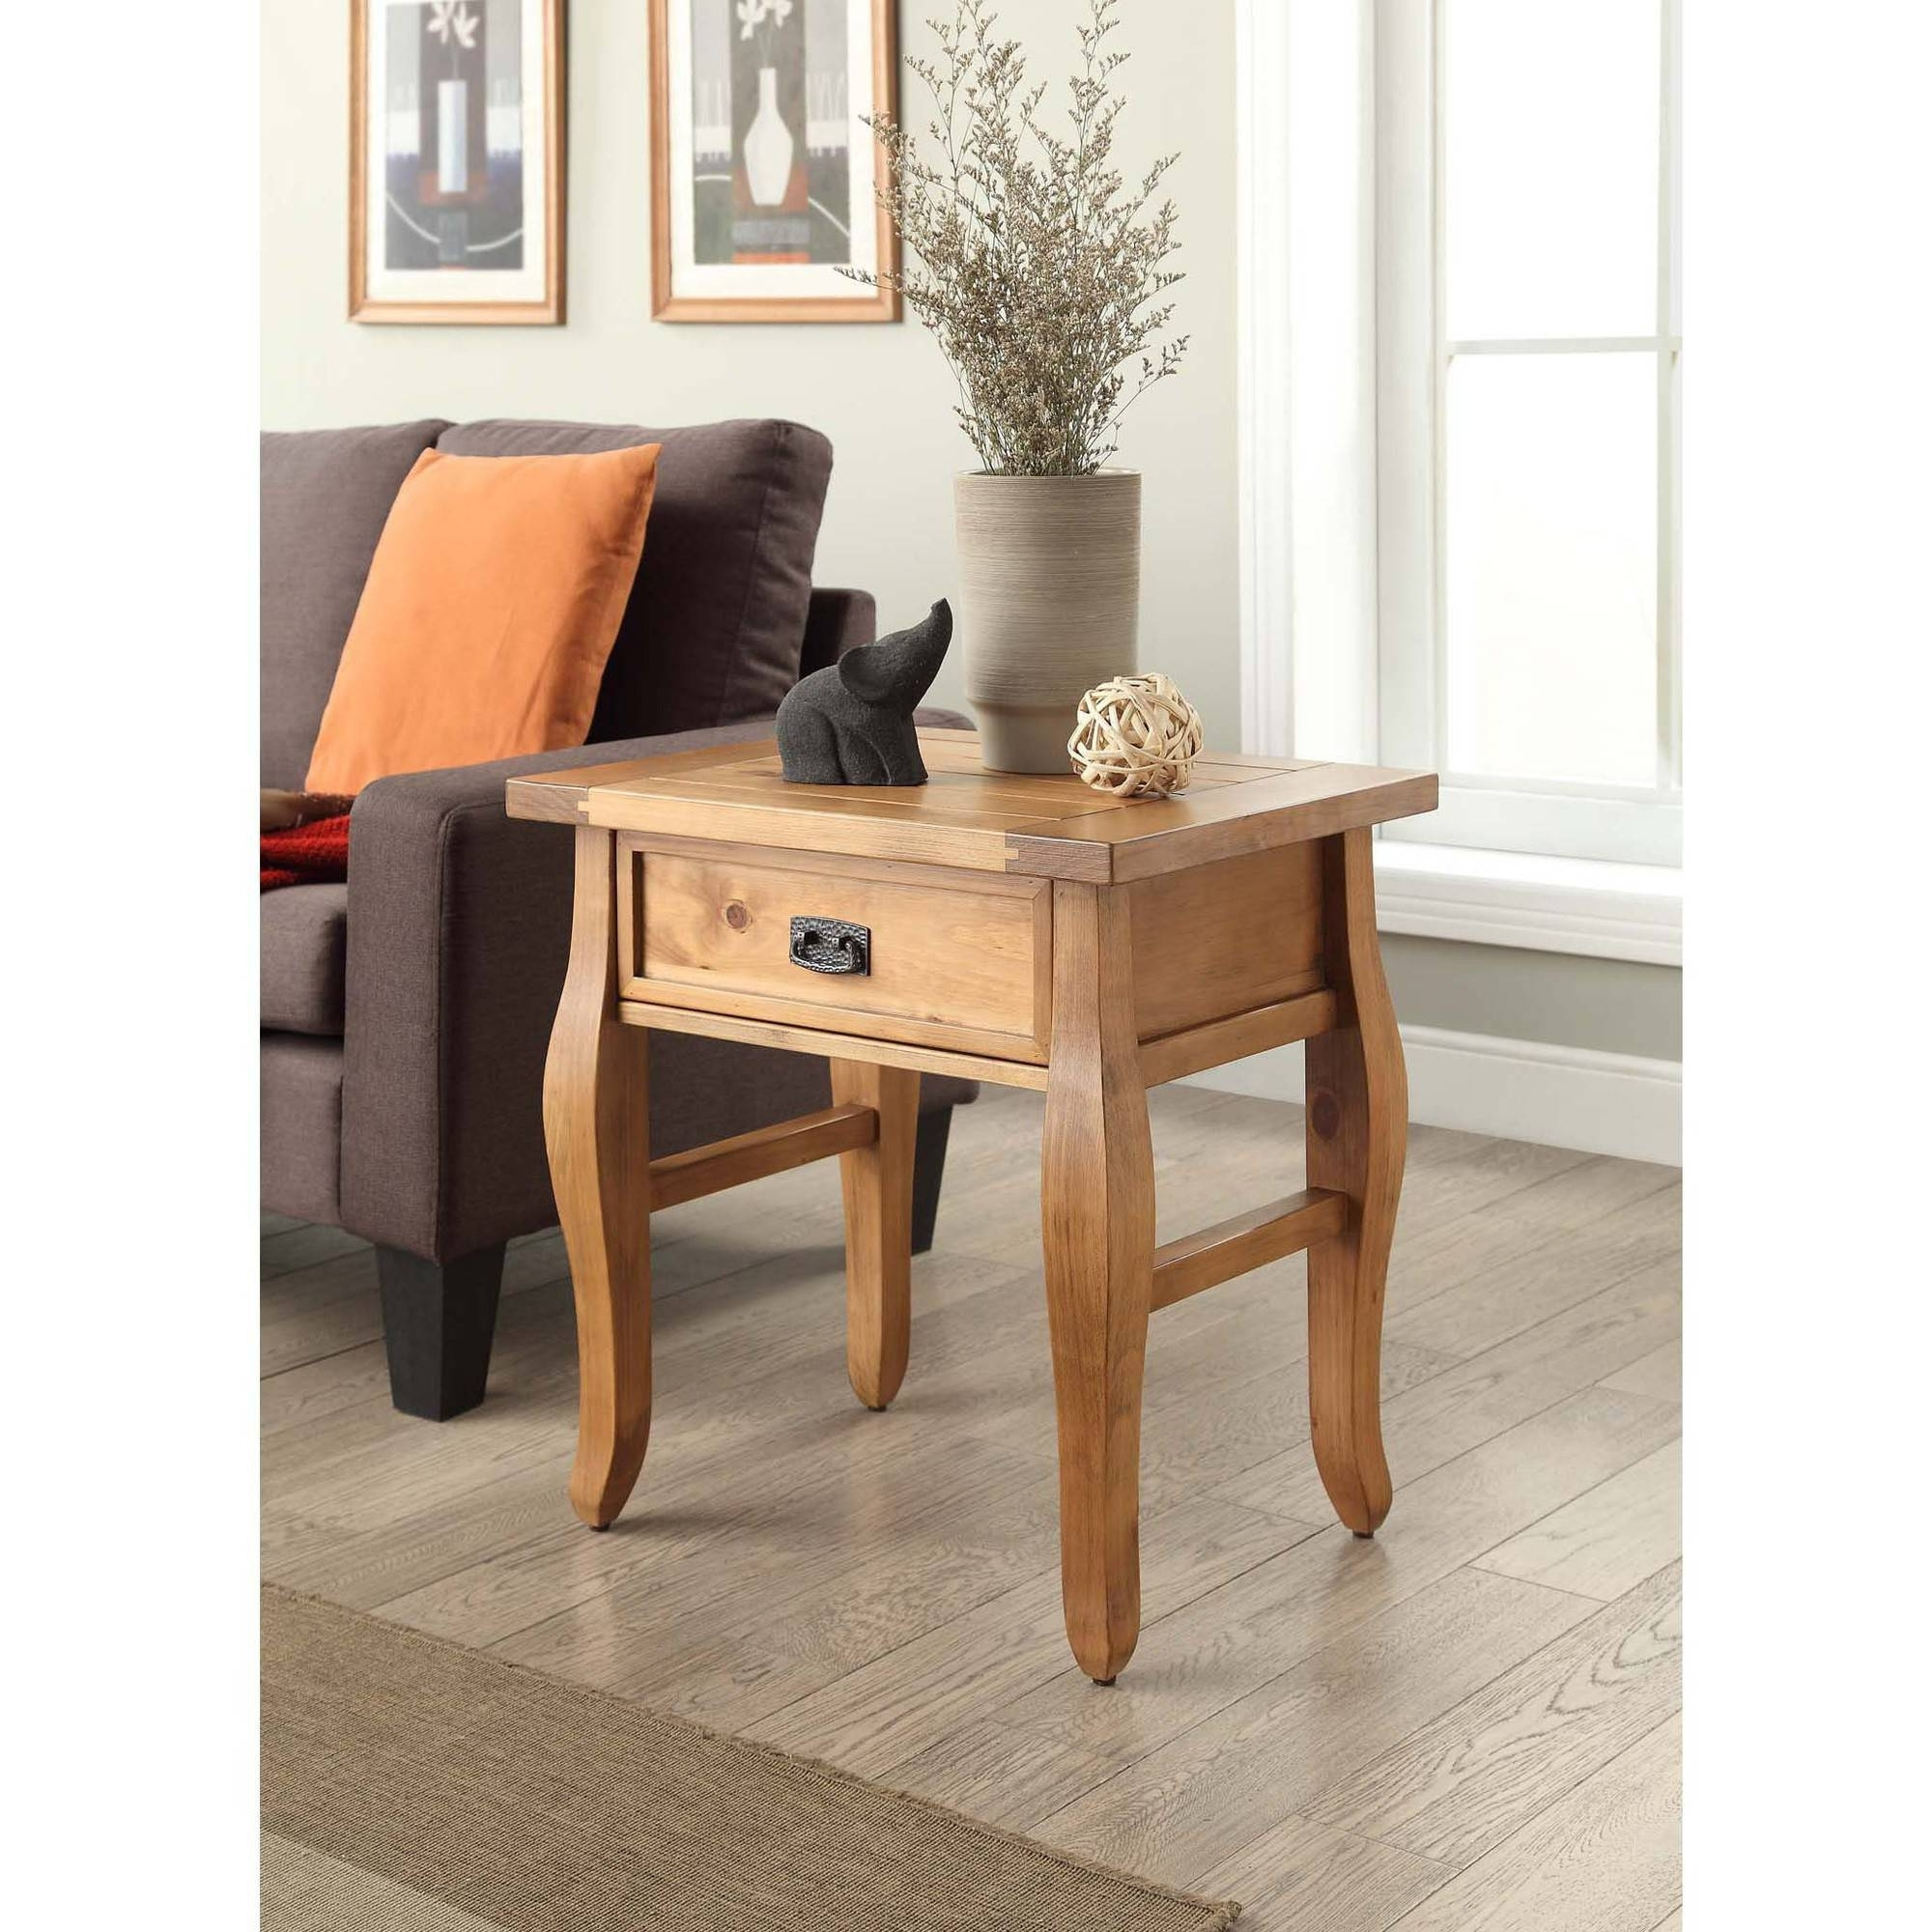 Linon Santa Fe End Table, Antique Finish, 24 Inches Tall – Walmart For Santa Fe Coffee Tables (View 3 of 30)